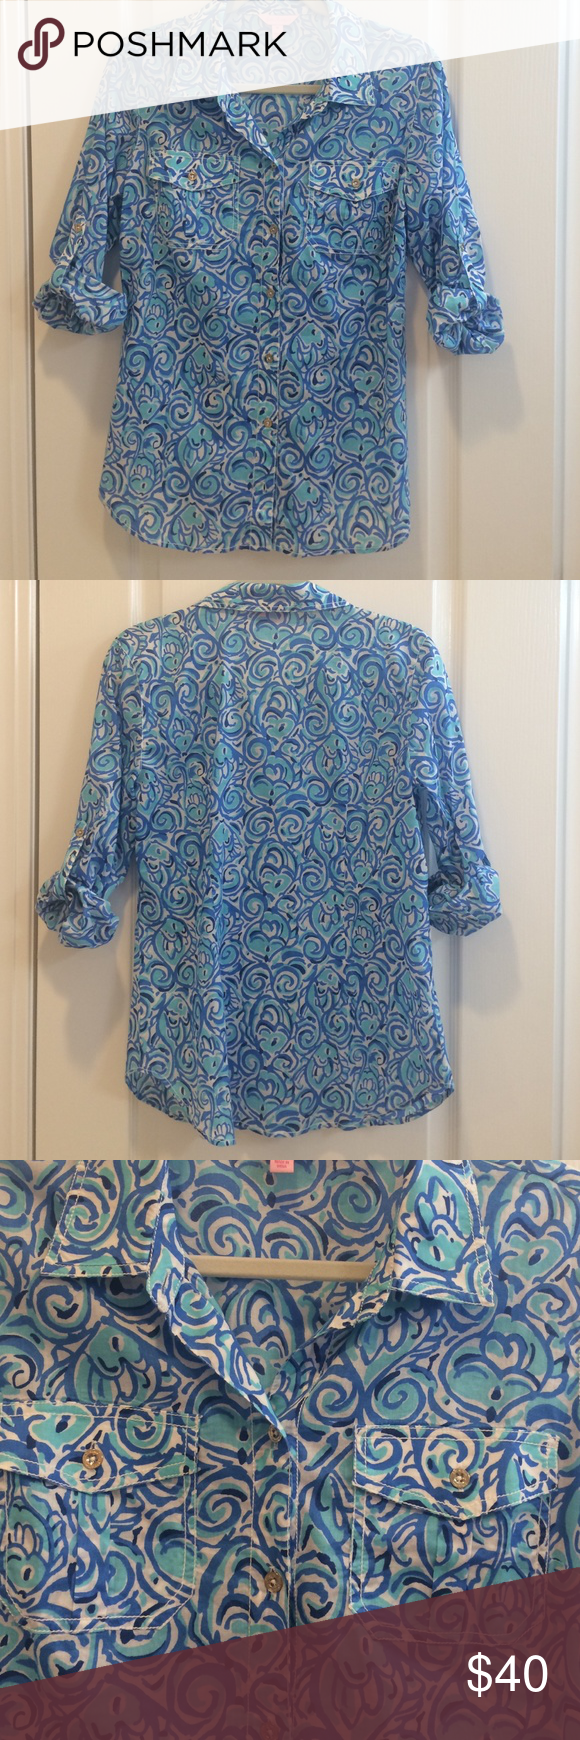 Lilly Pulitzer Top. Blue fish design. Two buttoned pockets in front. Sleeves can be worn up or down. EUC. Only worn a couple of times. 100% cotton. Machine wash. Lilly Pulitzer Tops